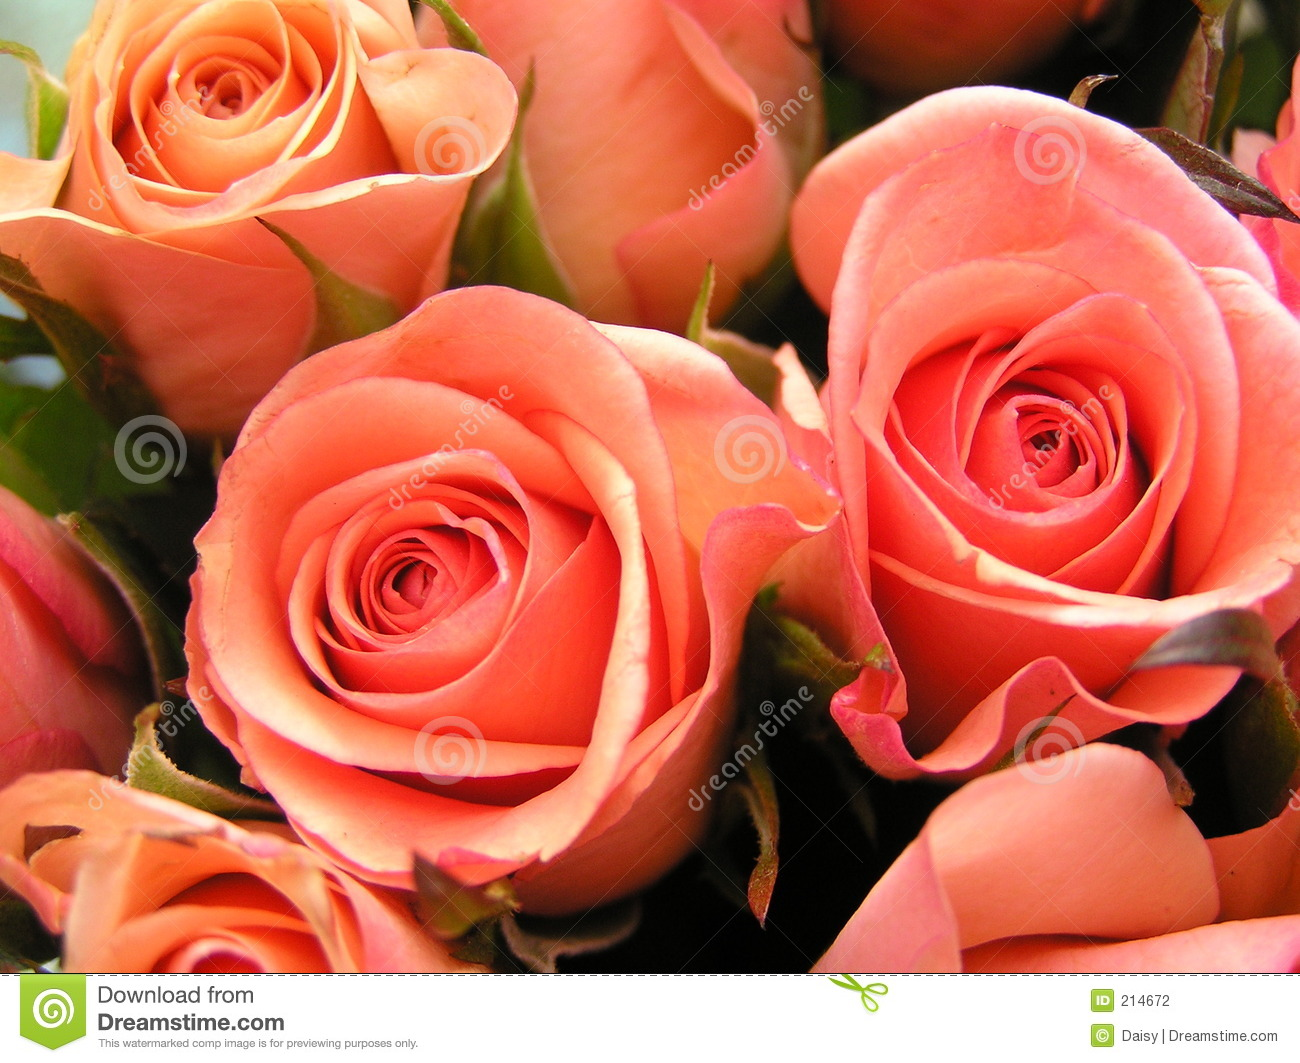 Coral colored roses stock photo. Image of color, wedding - 214672